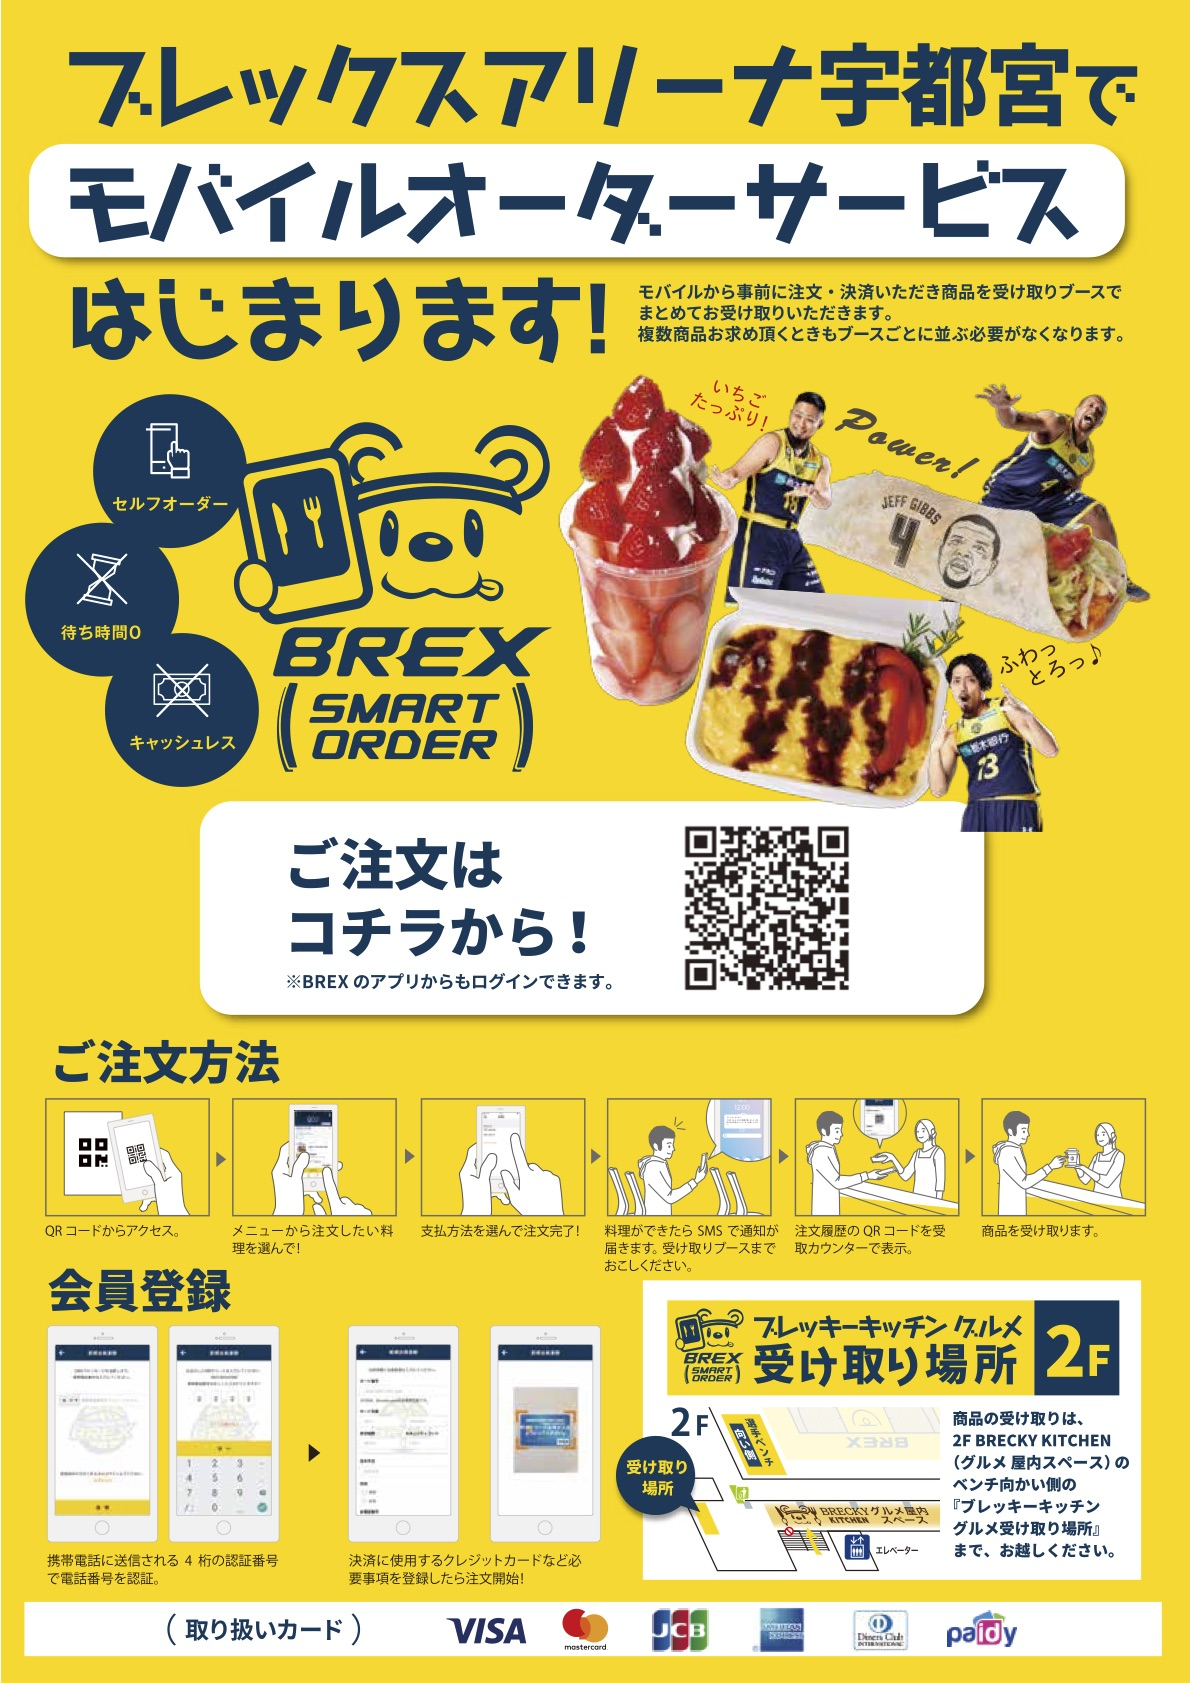 How to BREX SMART ORDER